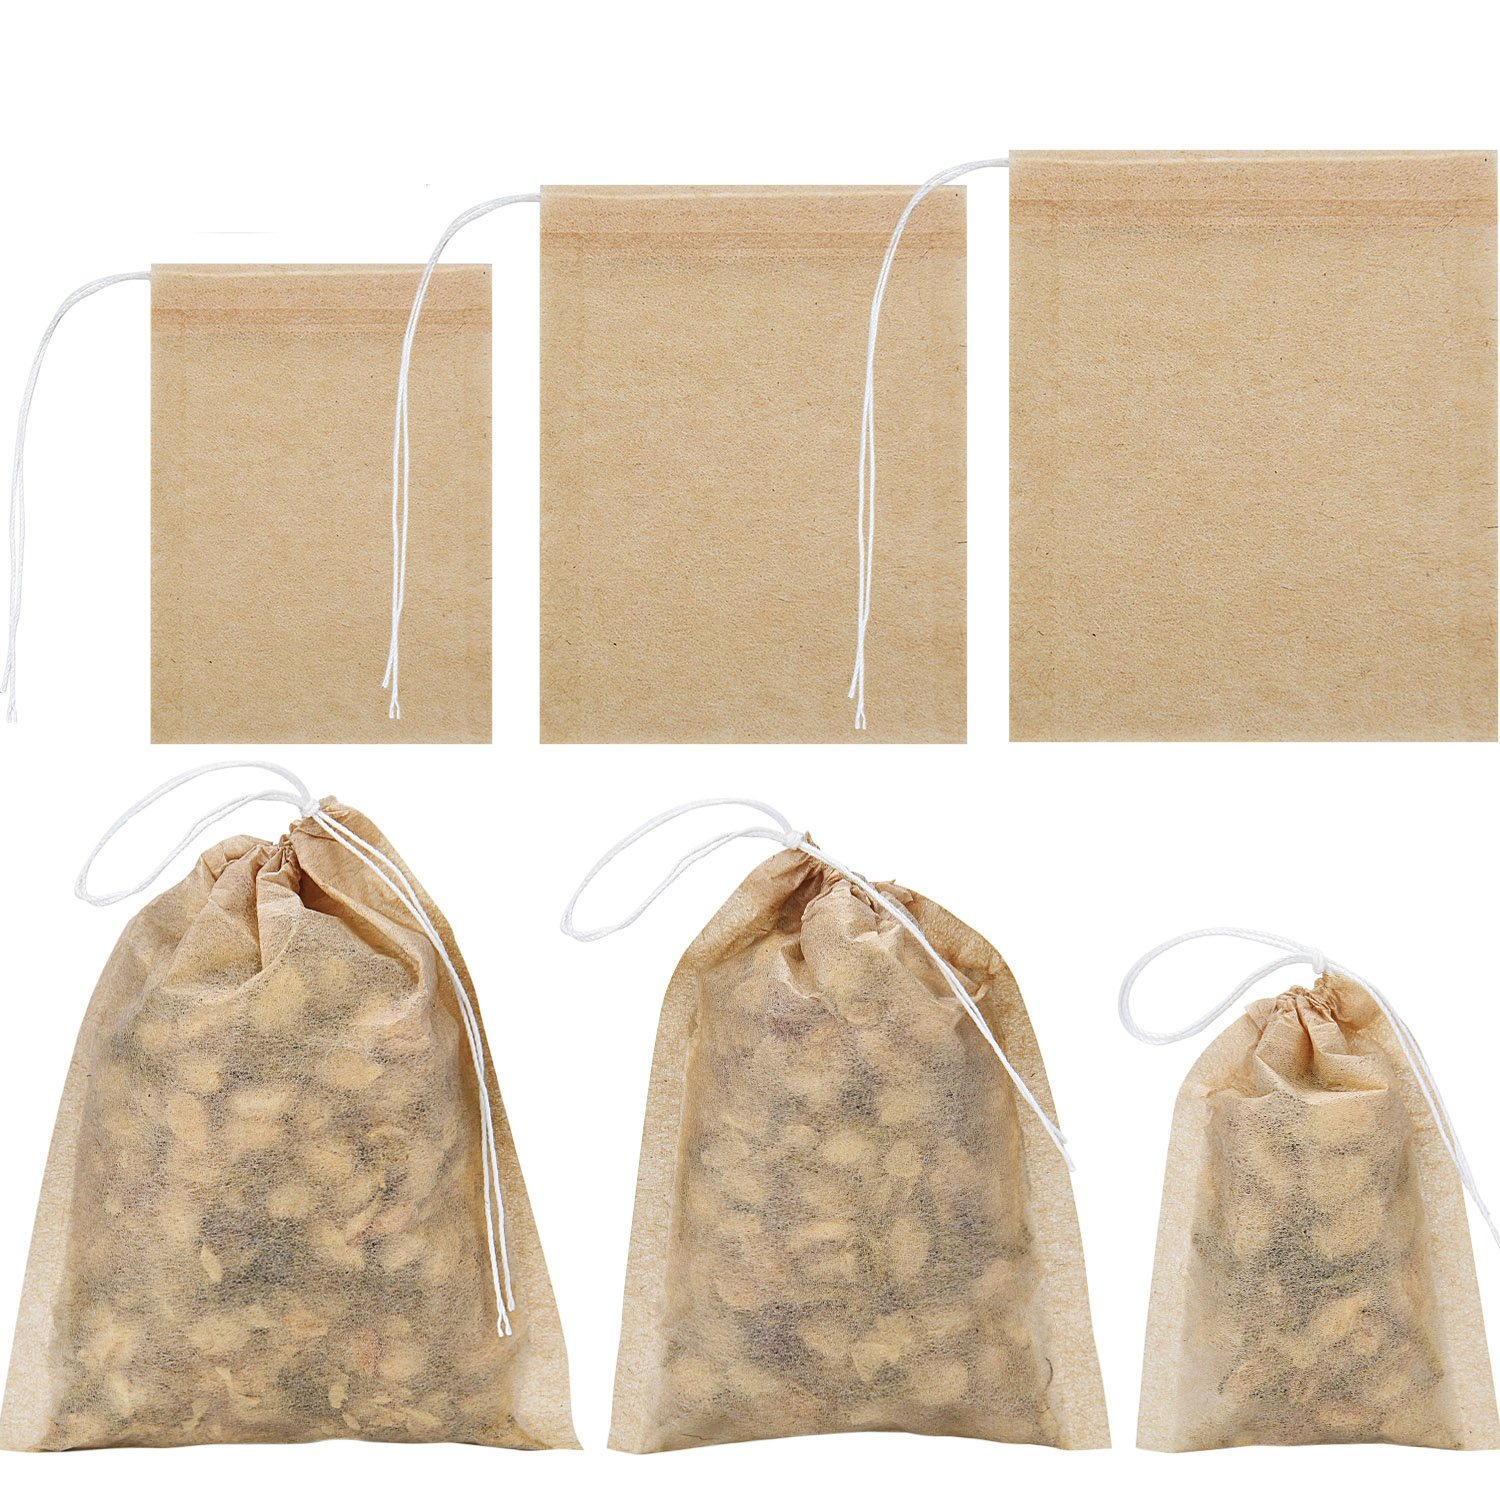 BBTO 300 Pieces 3 Sizes Tea Filter Bags Disposable Tea Infuser with Drawstring for Loose Leaf Tea